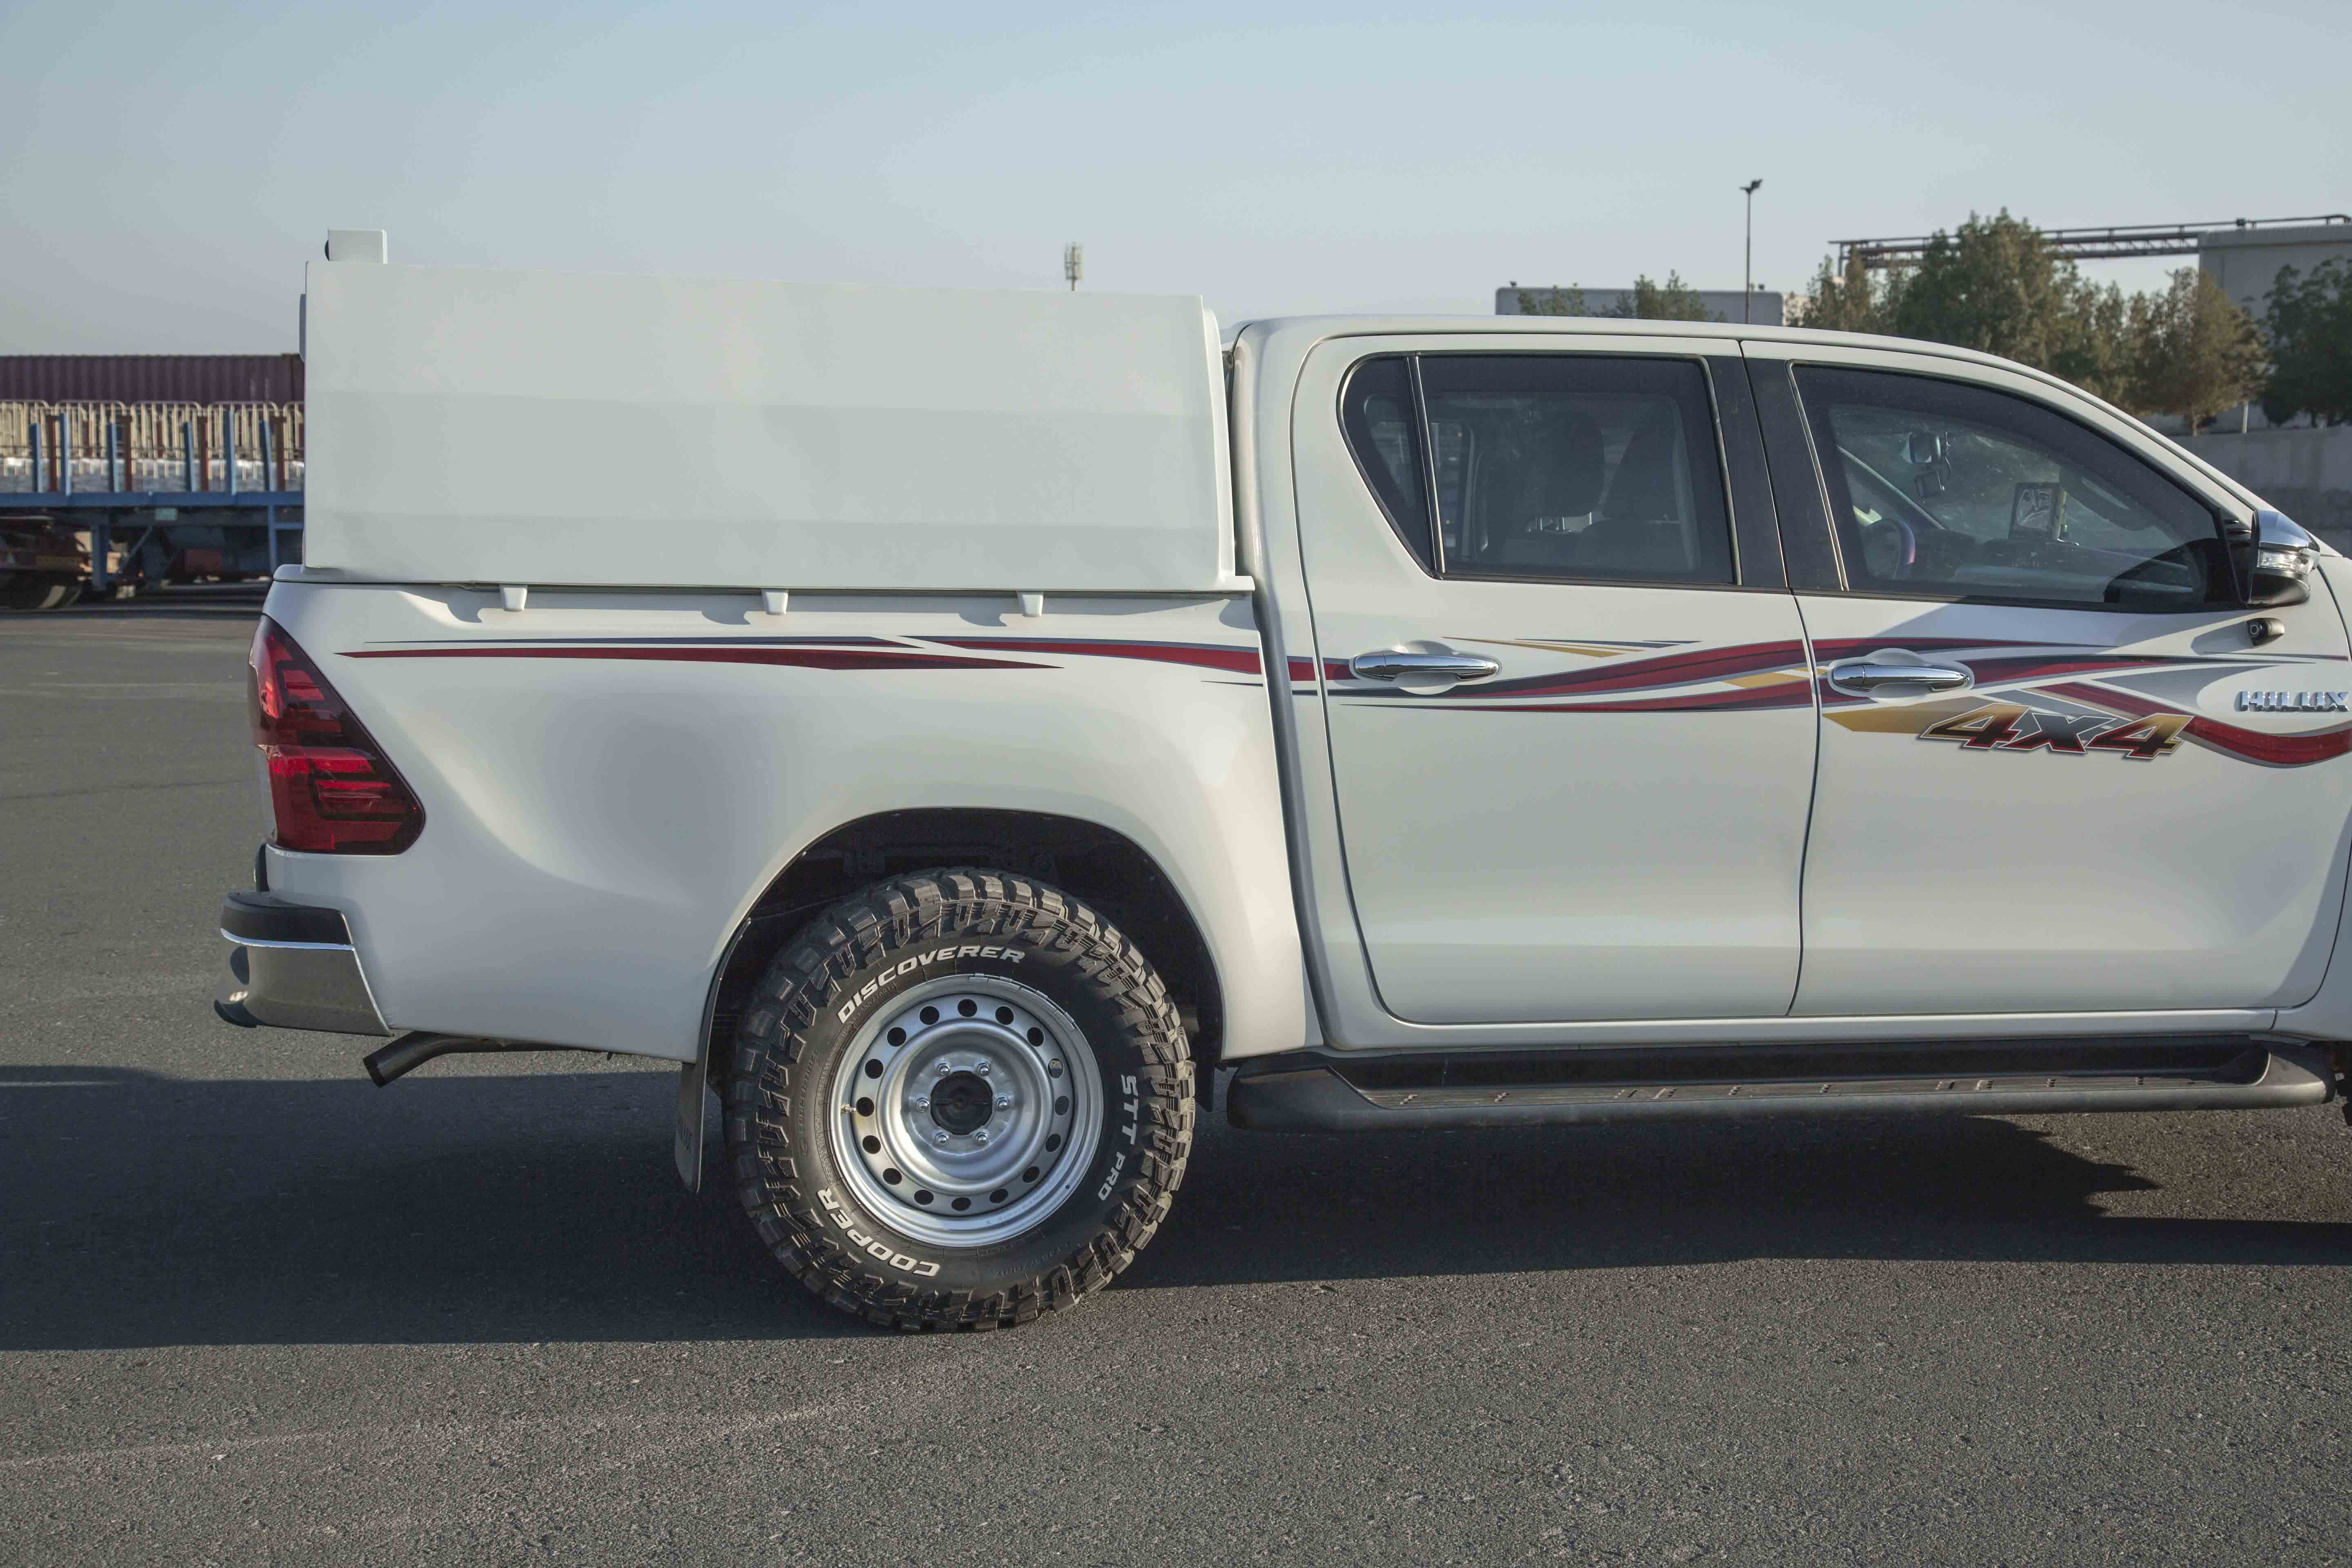 The Armoured Toyota Hilux Pick Up